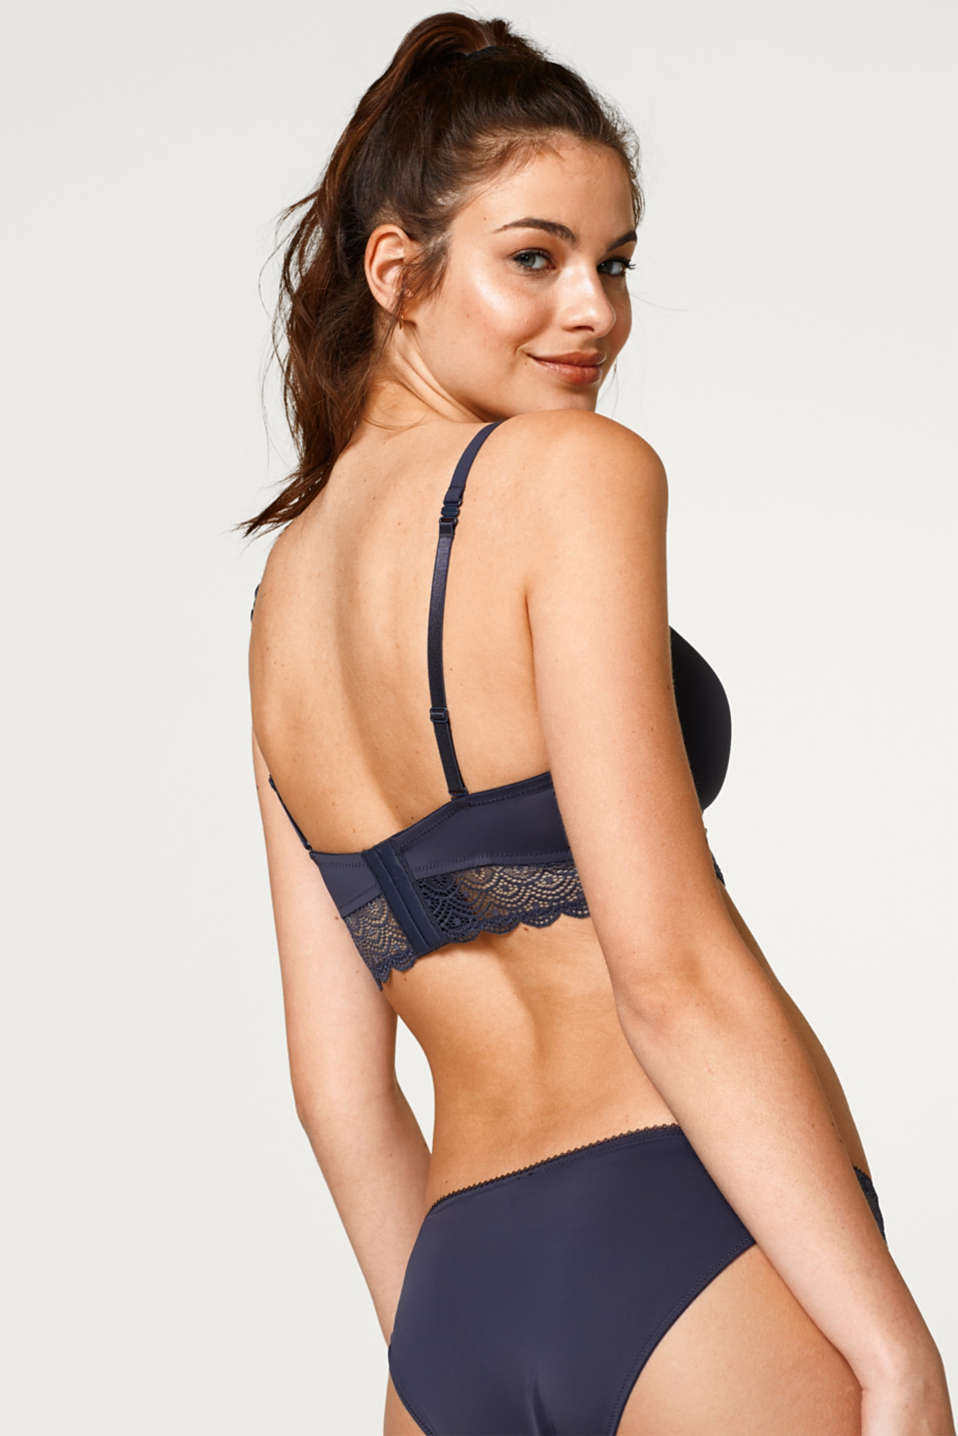 Padded non-wired bra with lace trim